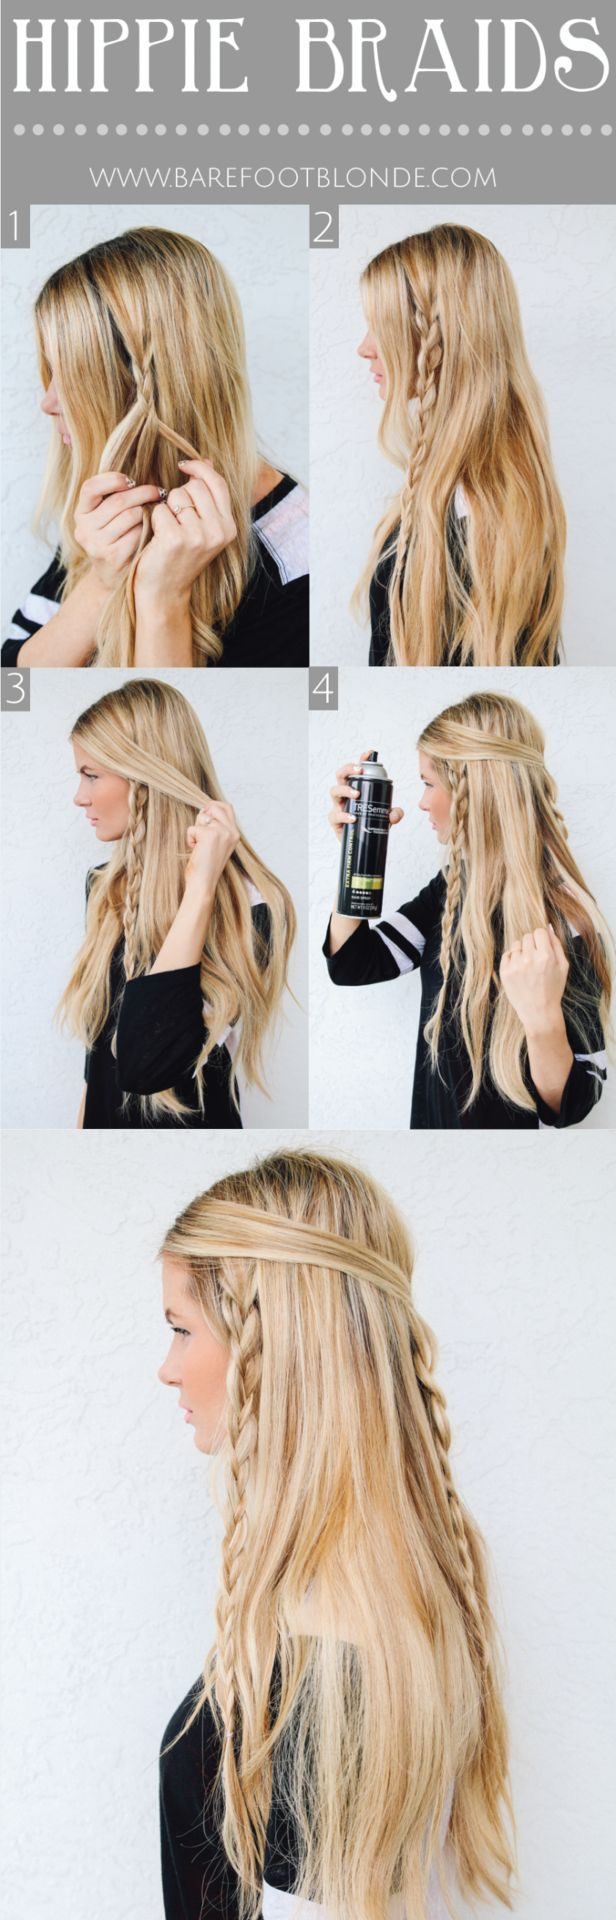 fashionable hairstyle tutorials for long thick hair - pretty